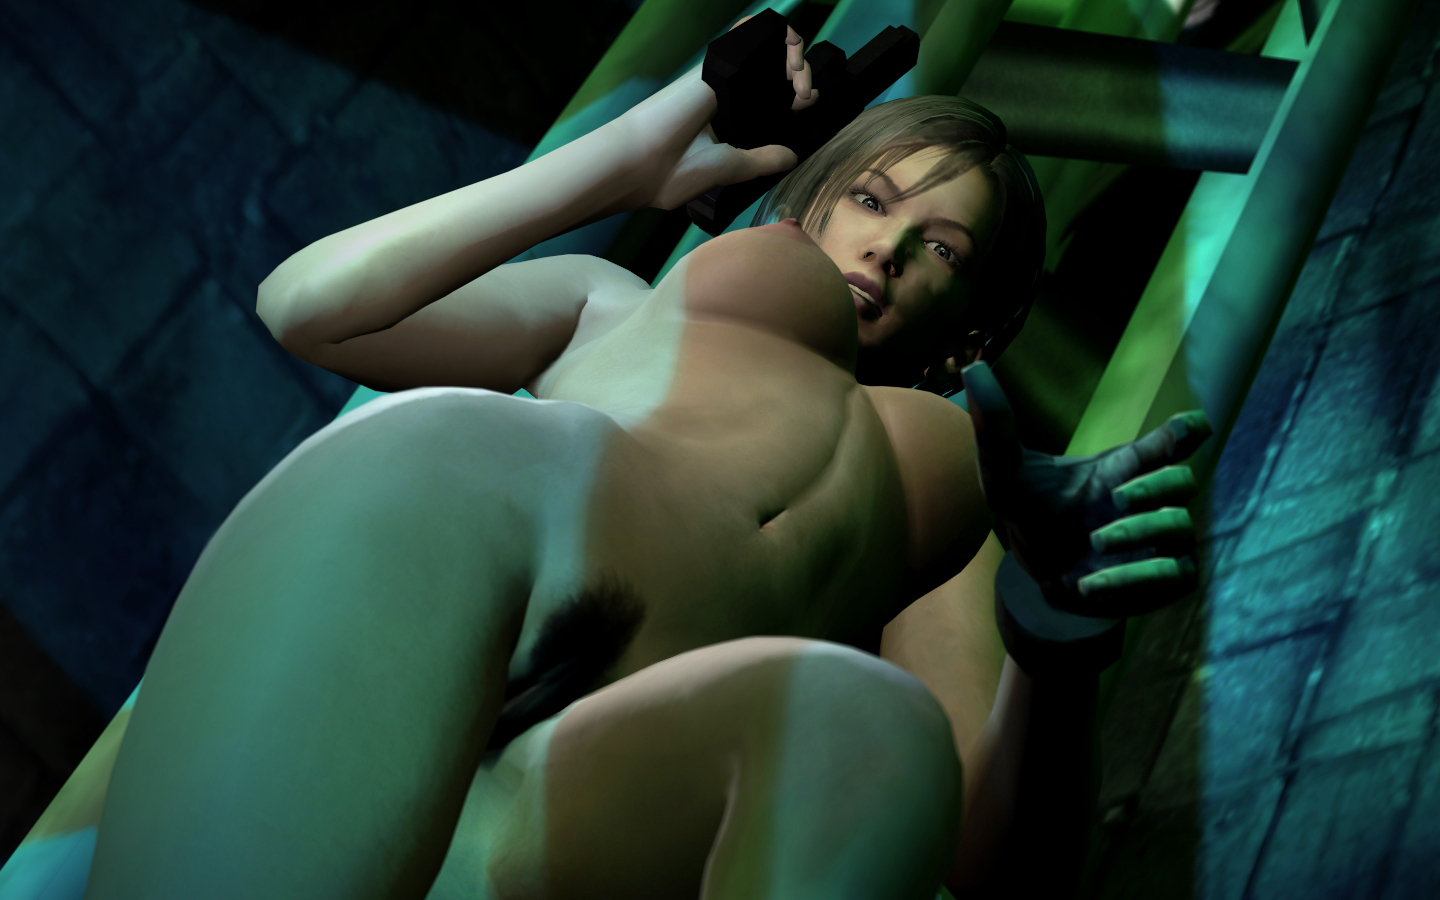 Fuck to nude ass arts resident evil  sexual photo